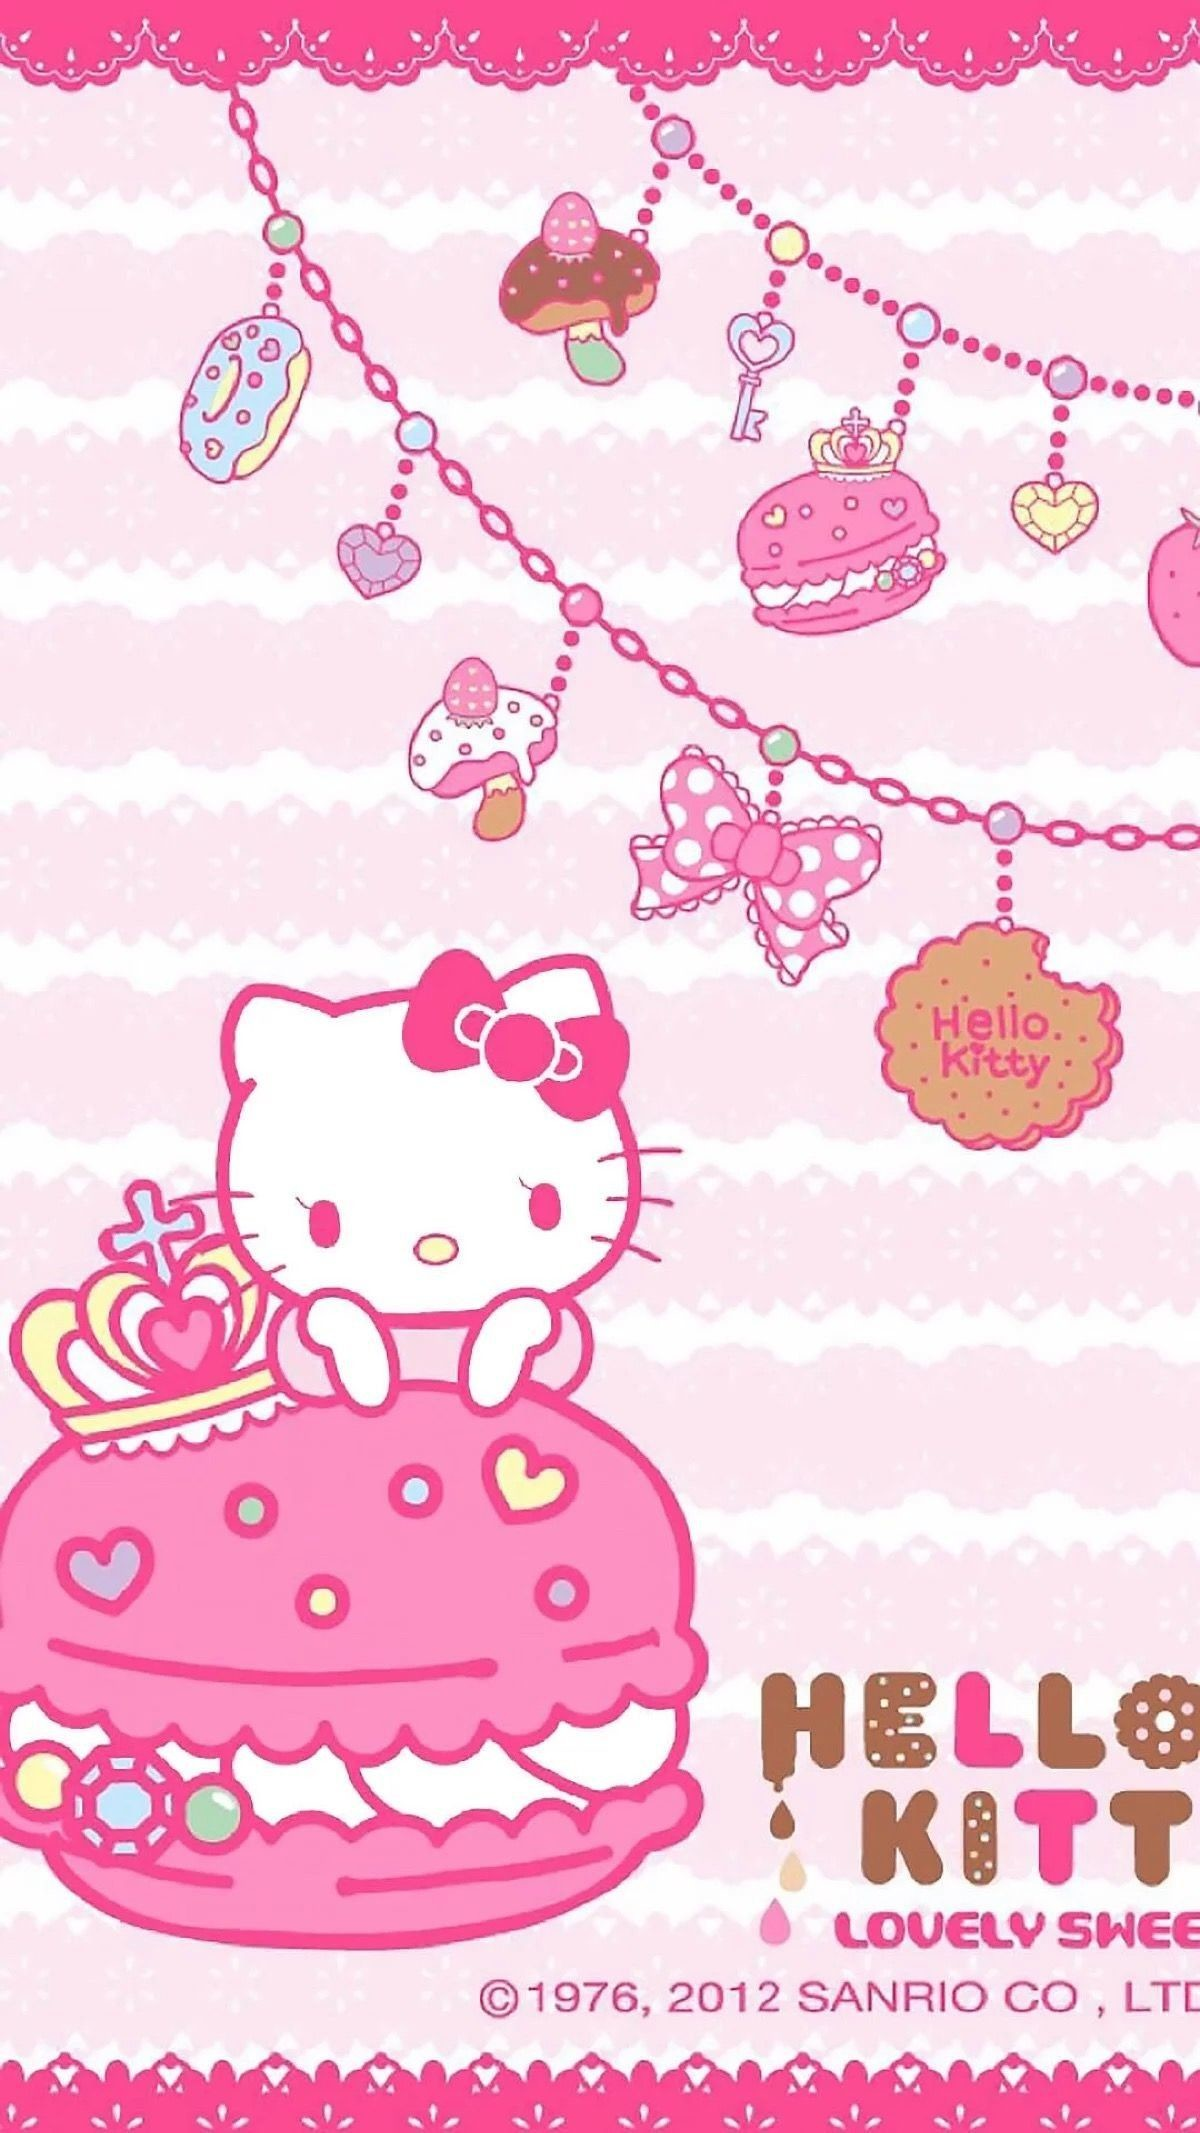 1200x2133  Hello Kitty Backgrounds, Hello Kitty Wallpaper, Sanrio Hello Kitty,  Phone Wallpapers, Wallpaper Backgrounds, Baby Birthday, Papo, Stickers, ...